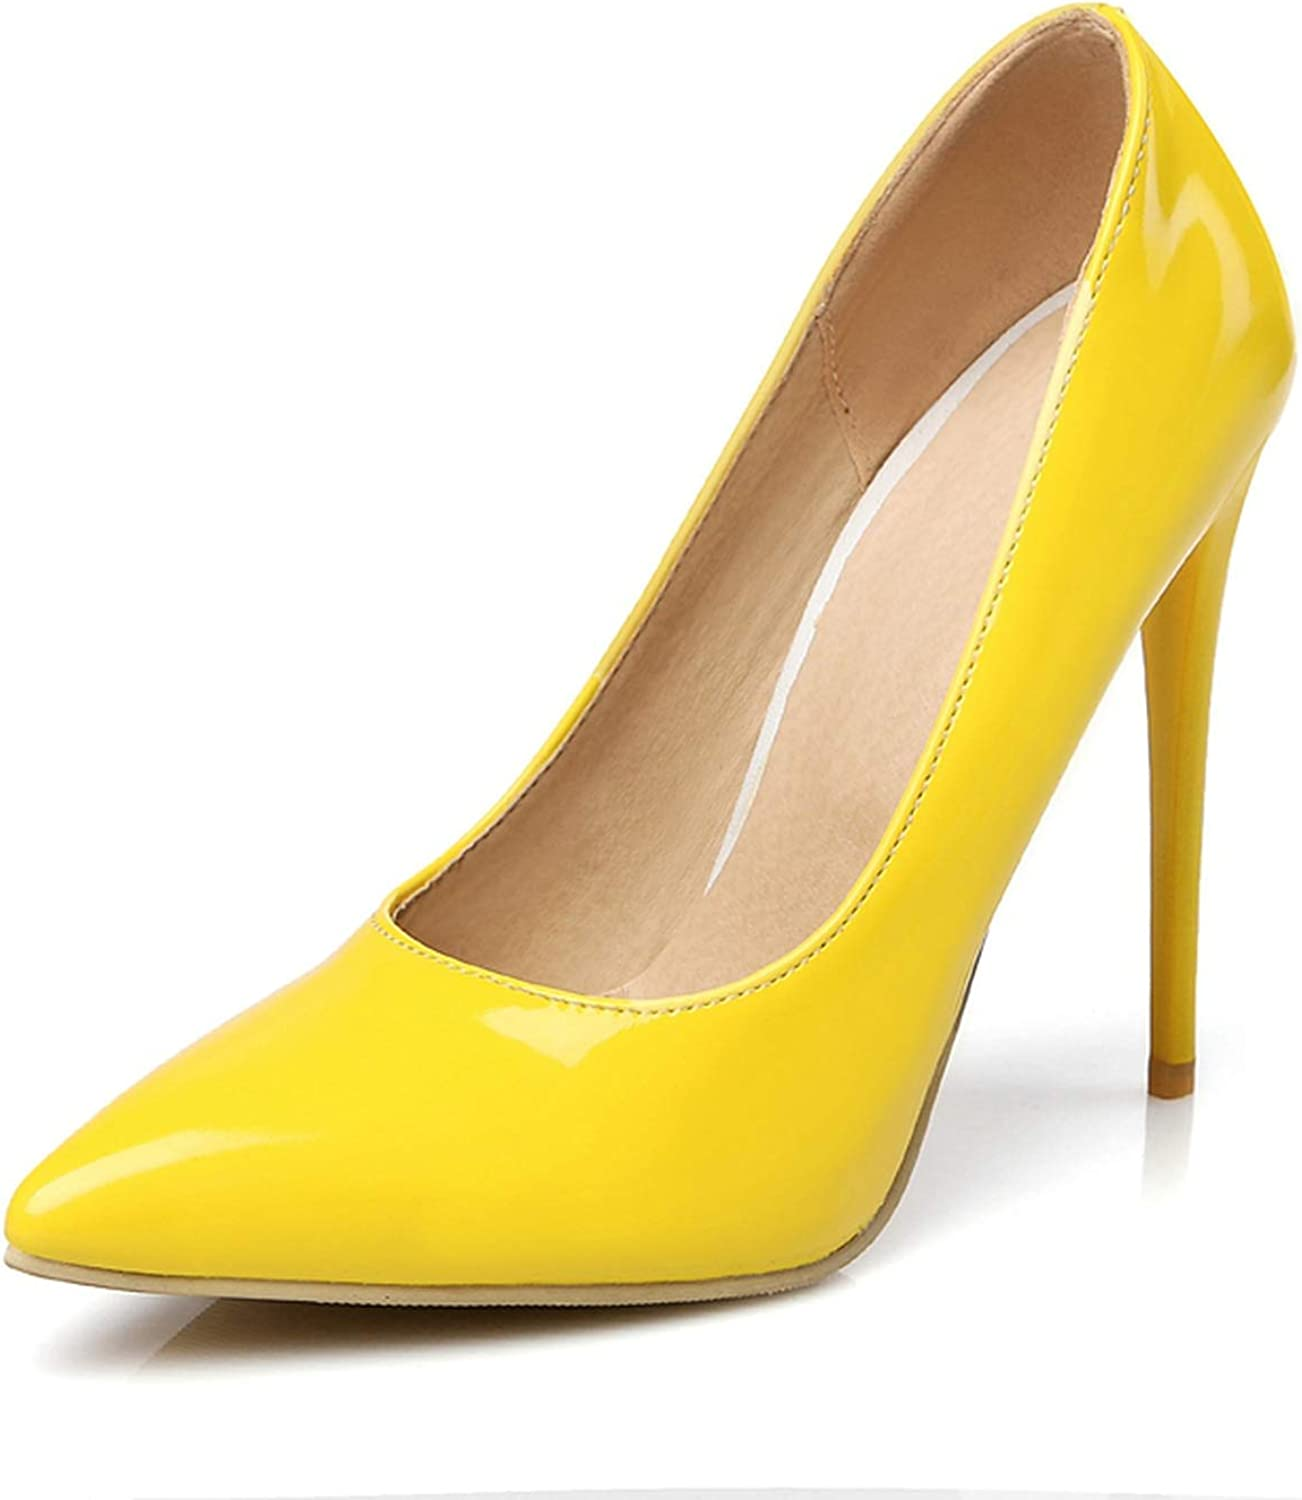 12Cm Shallow Thin Pumps Dress Party Office Lady's Pumps Pointed Toe Summer Stilettos women